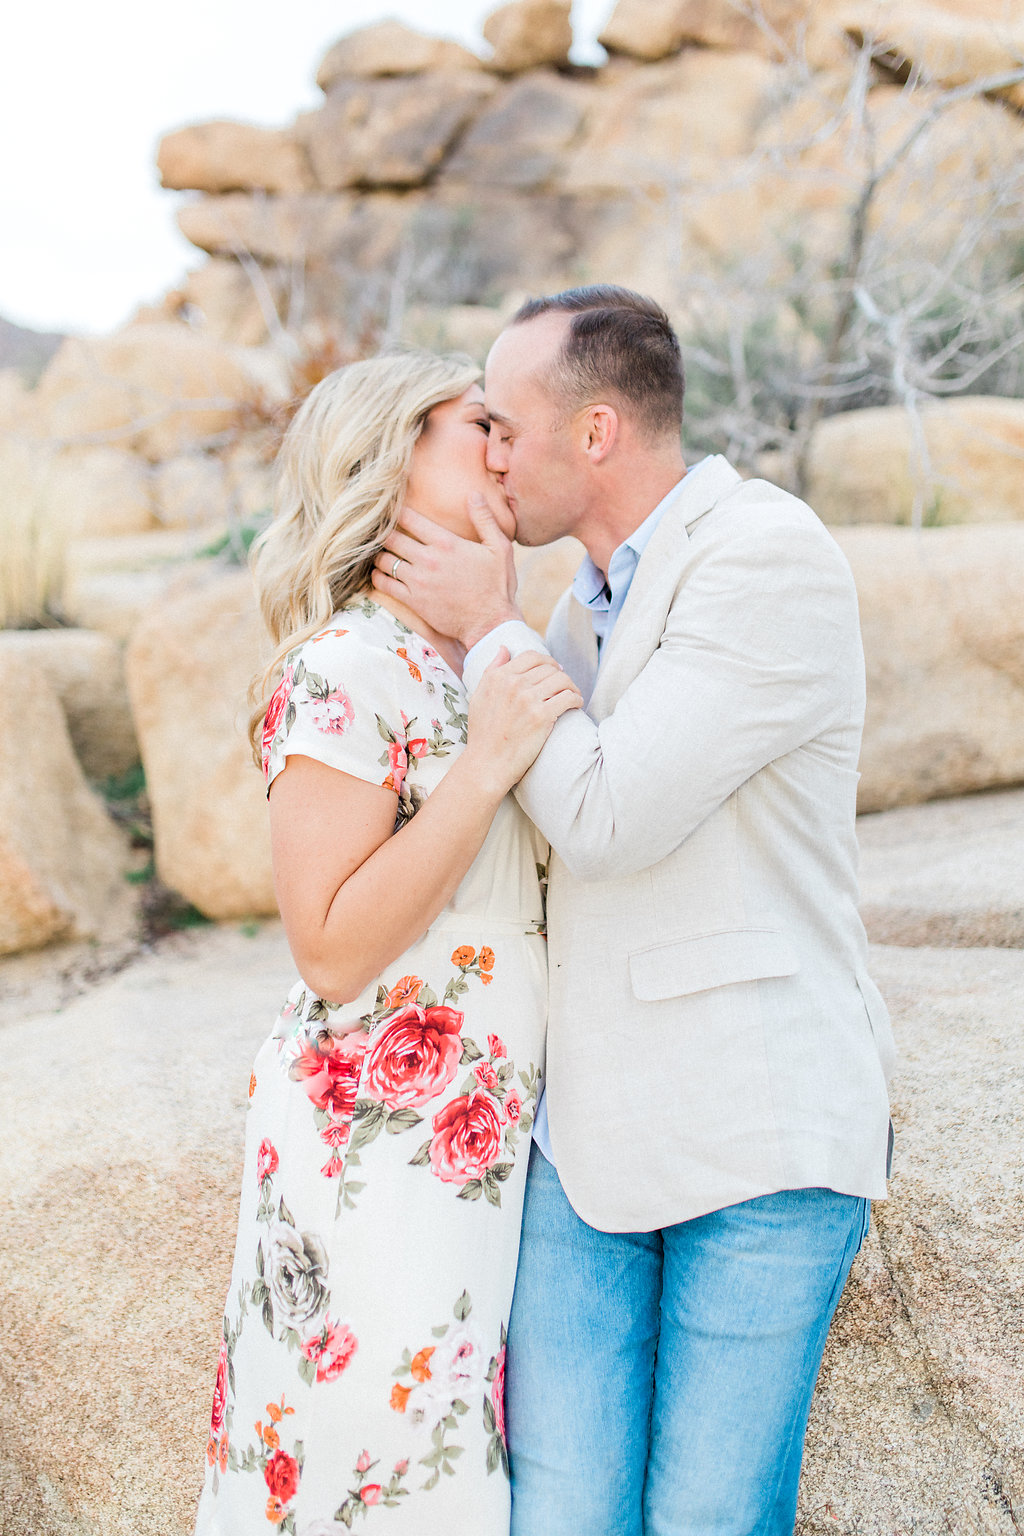 Joshua Tree Engagement Session | What to Wear for Pictures | Southern California Wedding Photographer | Mastin Labs Fuji Film | Fine Art Photographer | Desert Shoot | Kissing.jpg